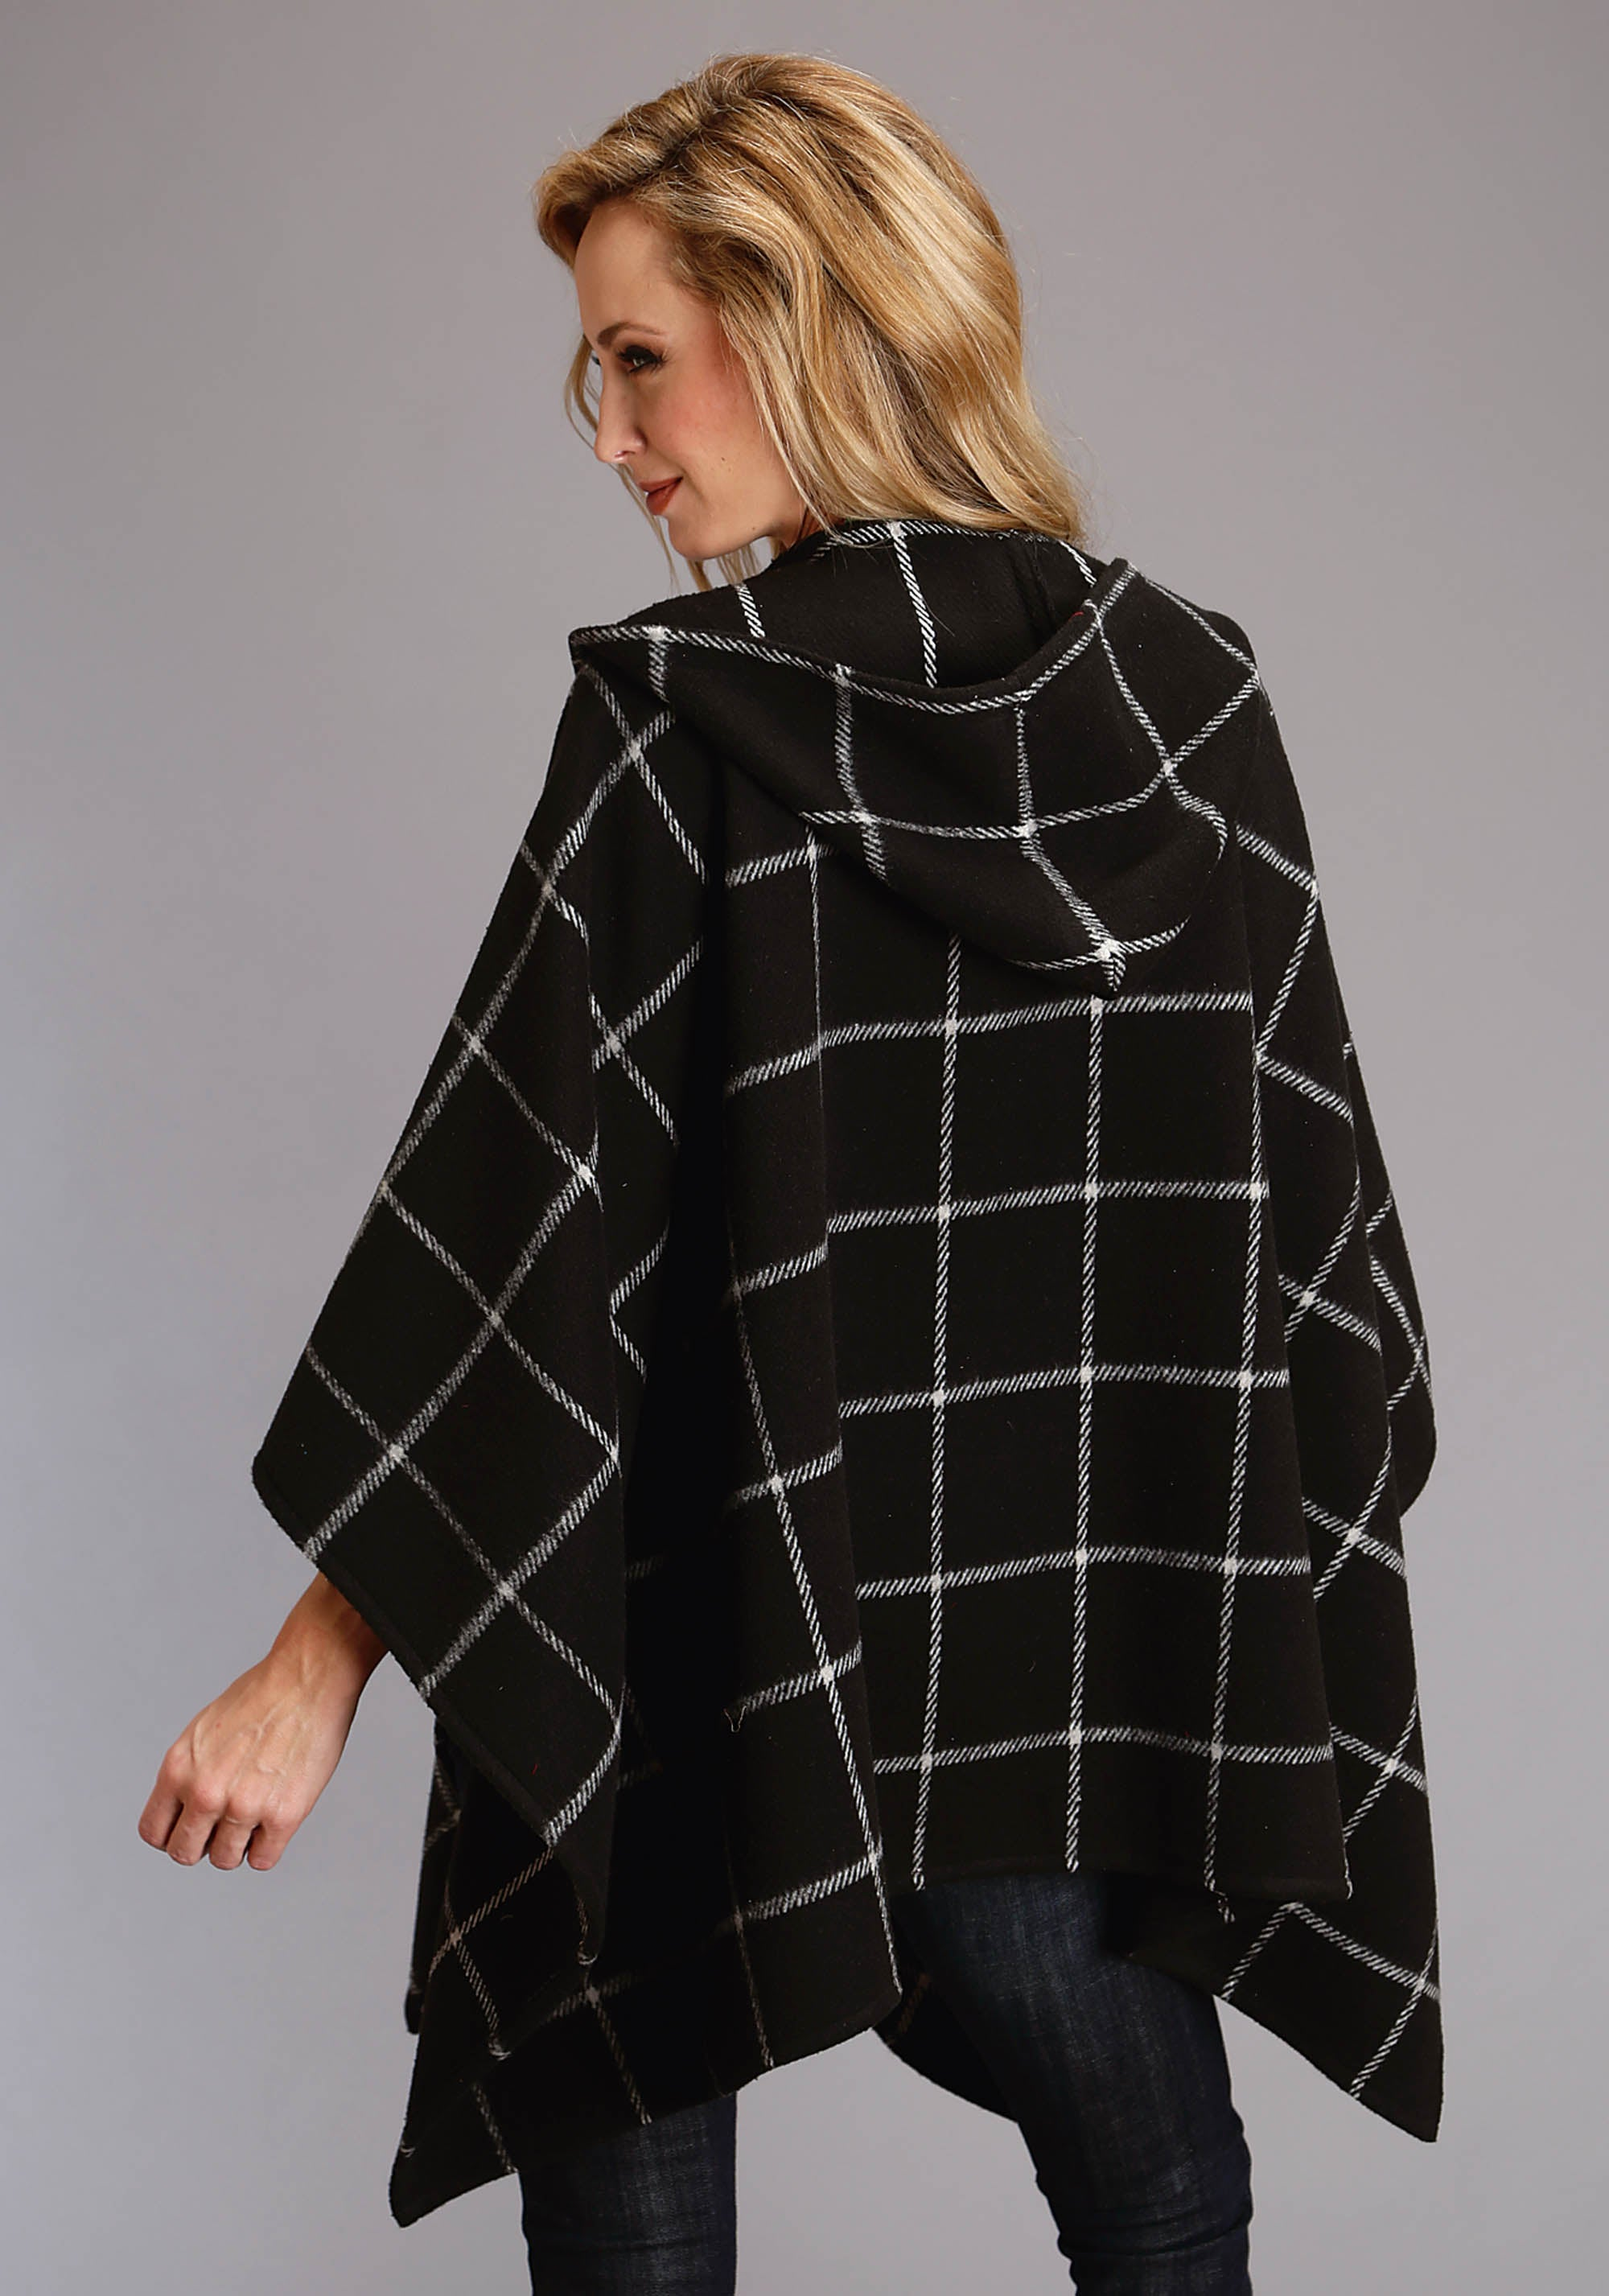 STETSON WOMENS BLACK 2387 BLACK & WHITE BRUSHED PLAID STETSON LADIES COLLECTION- FALL II JACKET